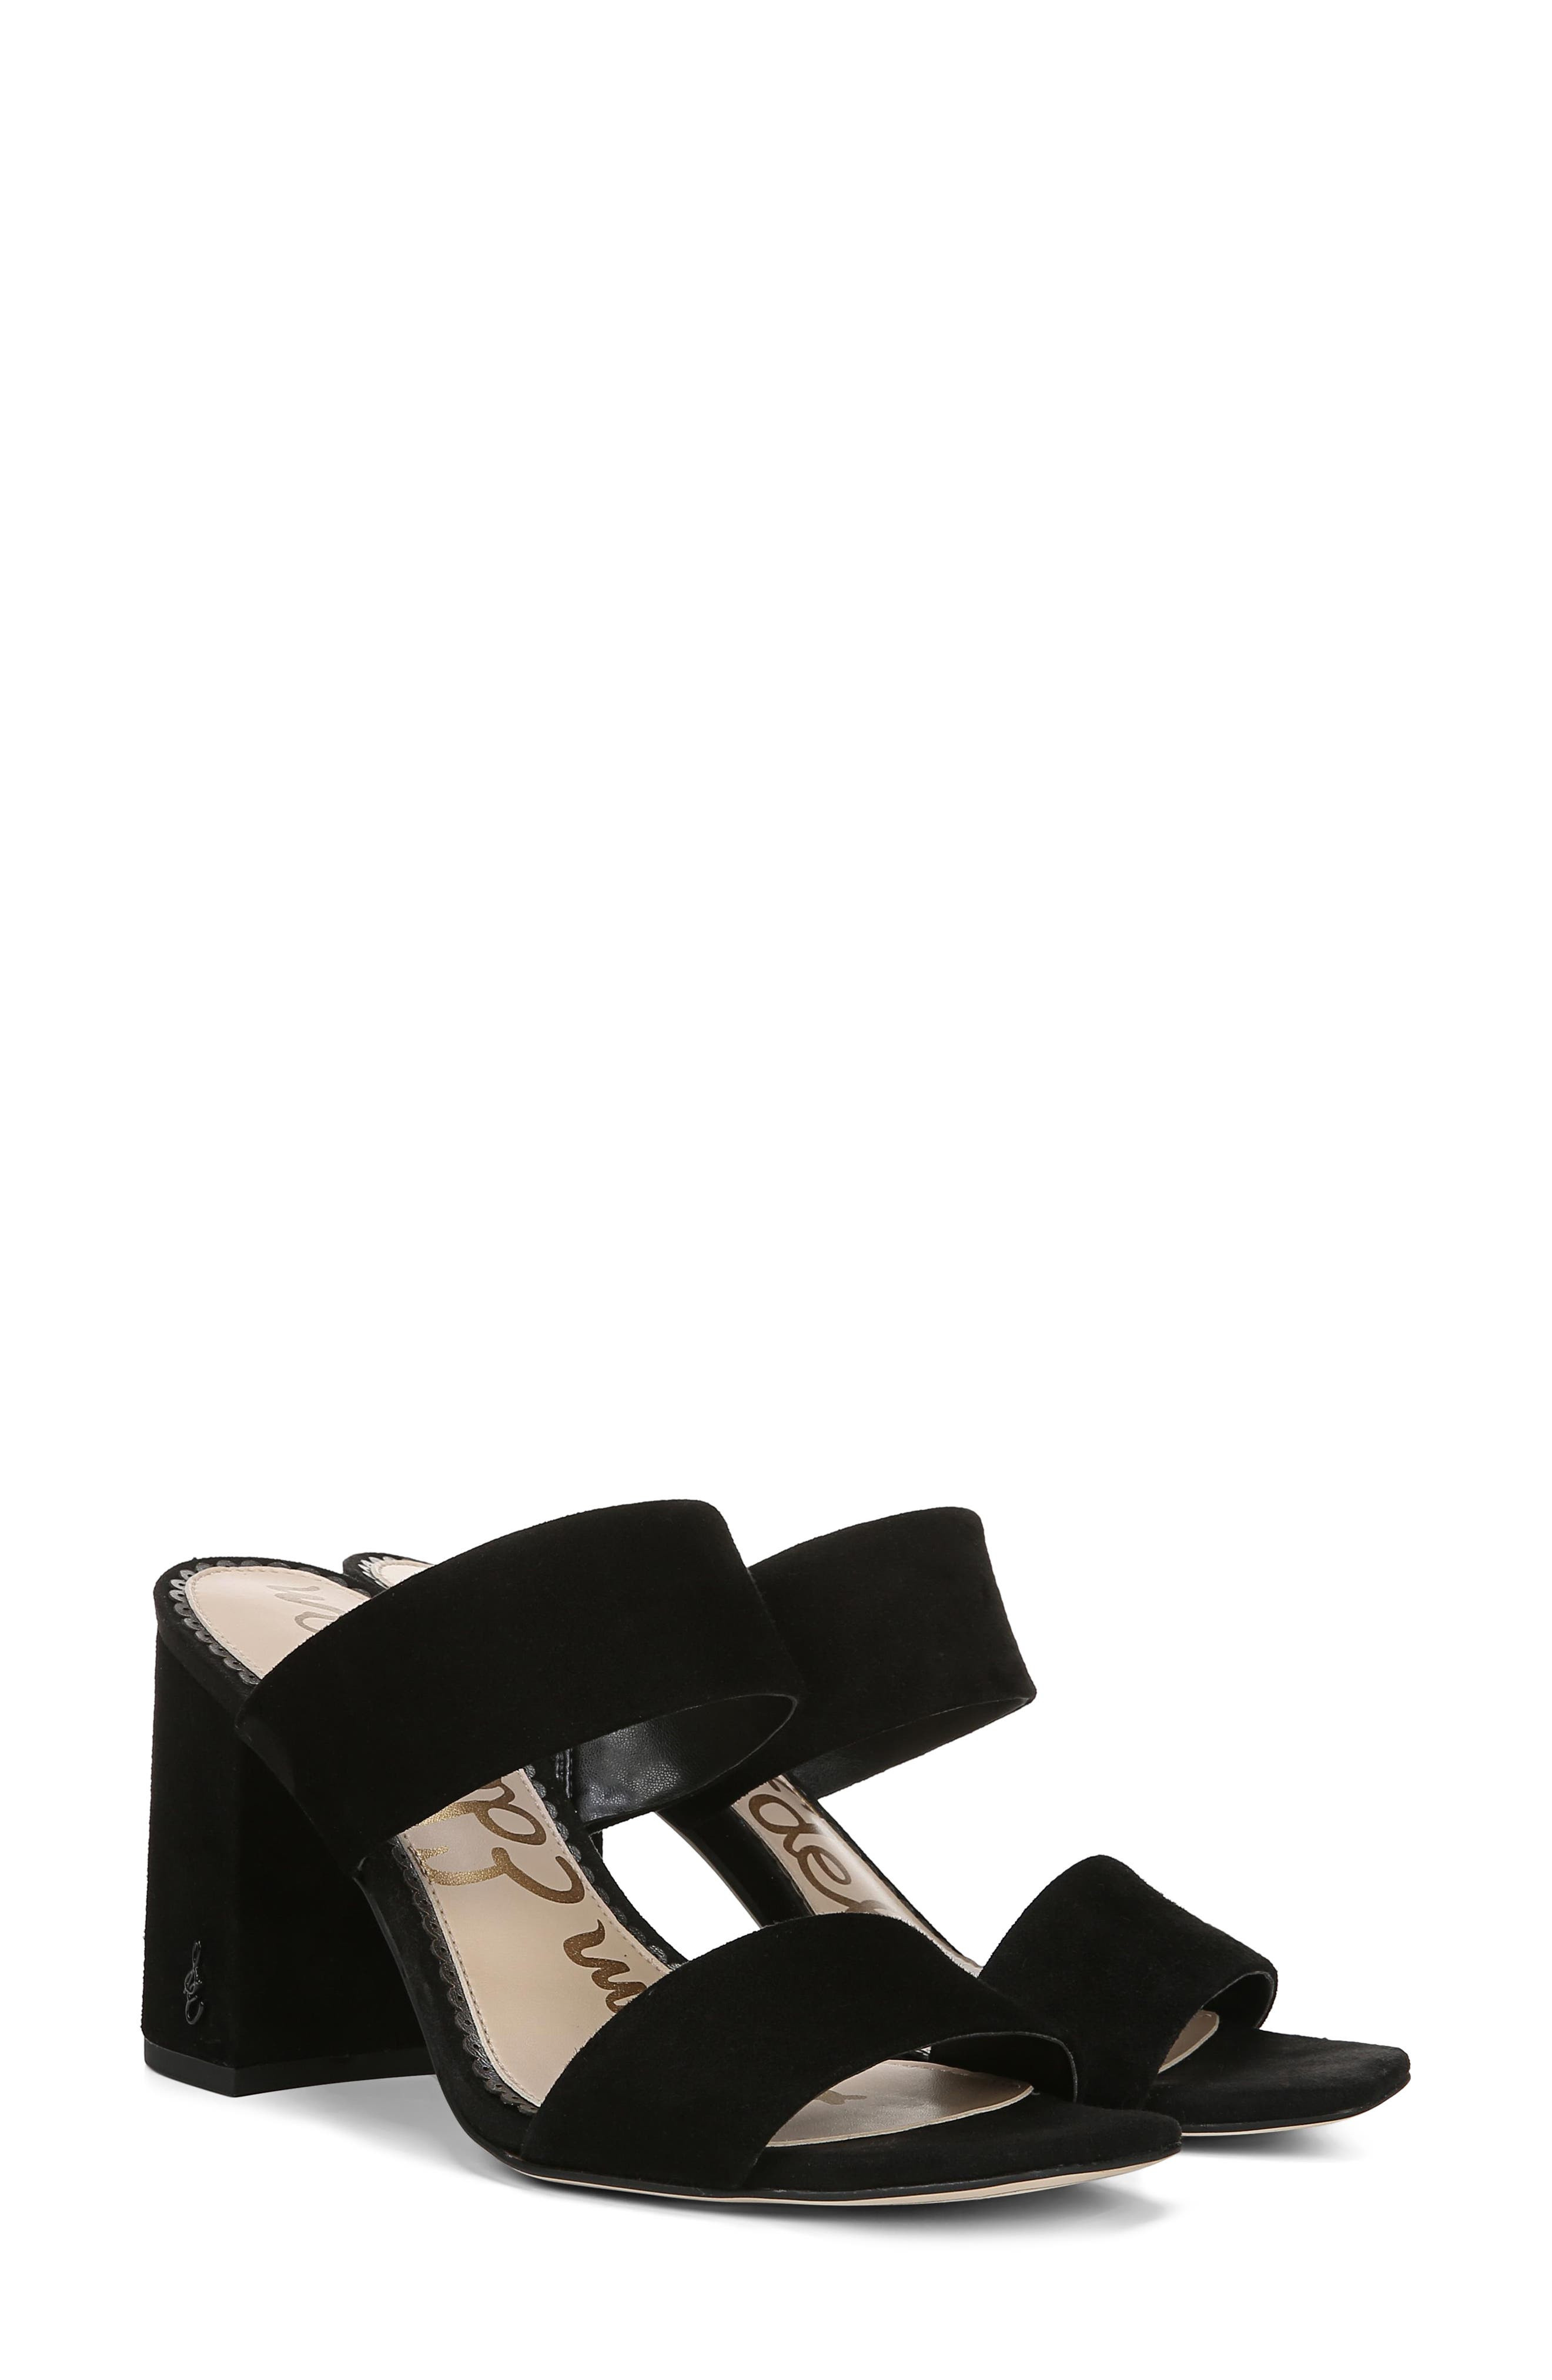 SAM EDELMAN, Delaney Sandal, Alternate thumbnail 9, color, BLACK SUEDE